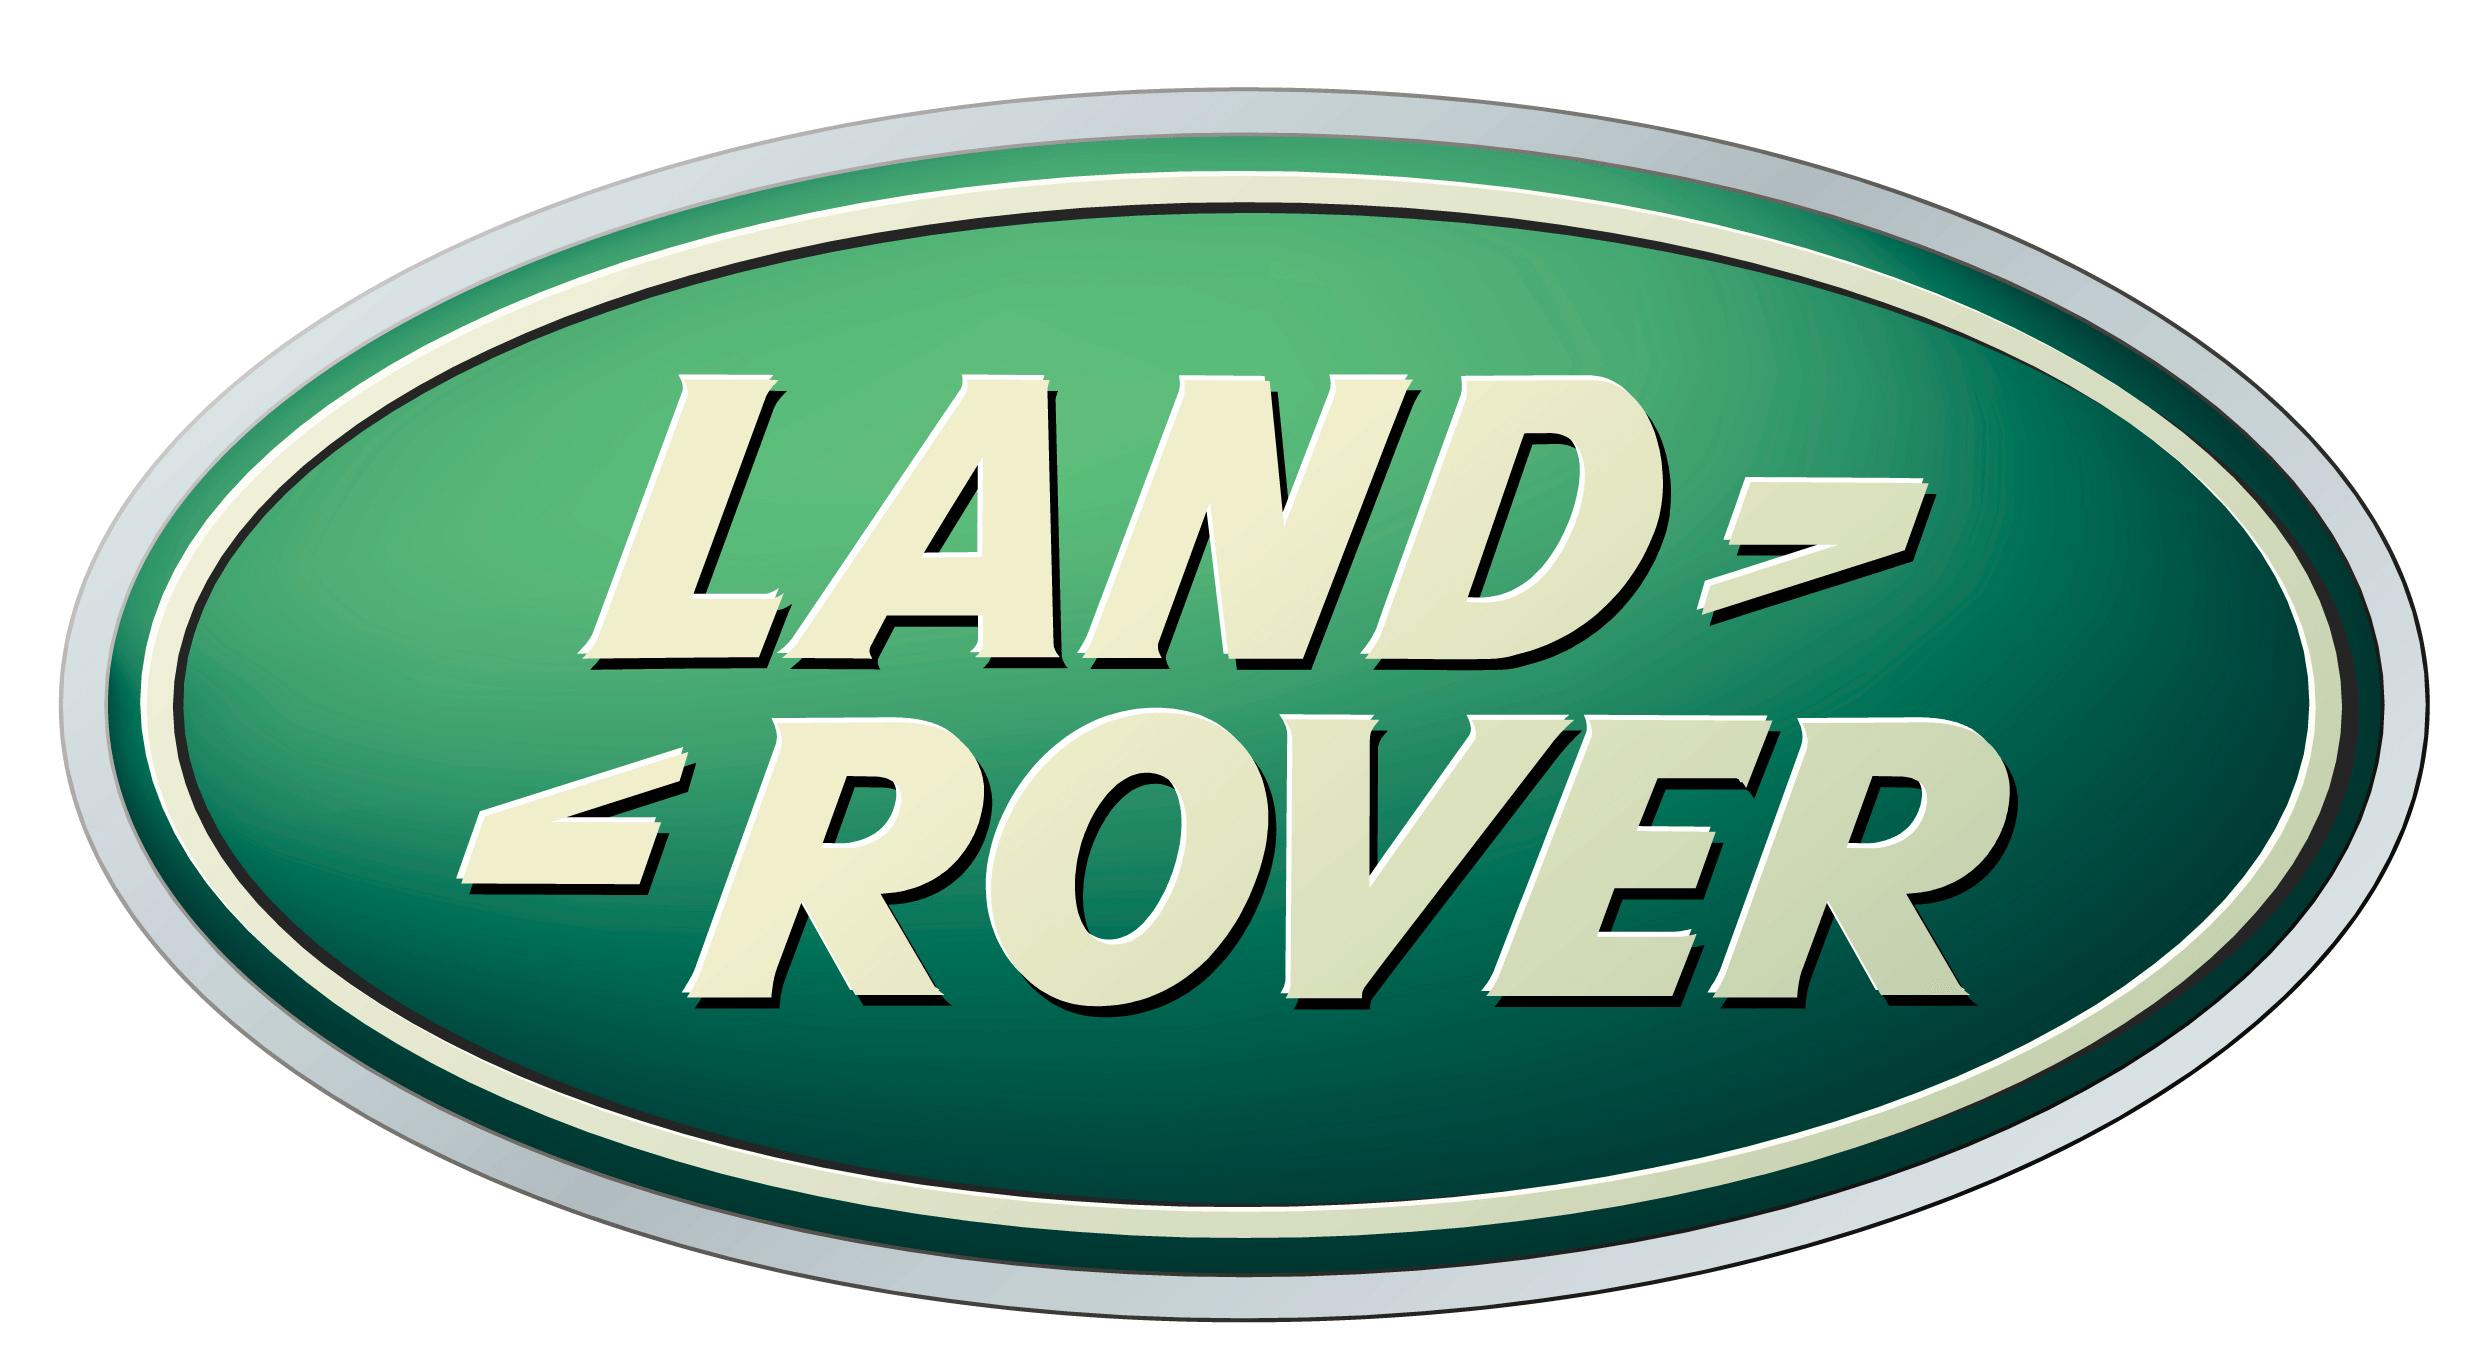 Land Rover Car Logo Png Brand Image PNG Image